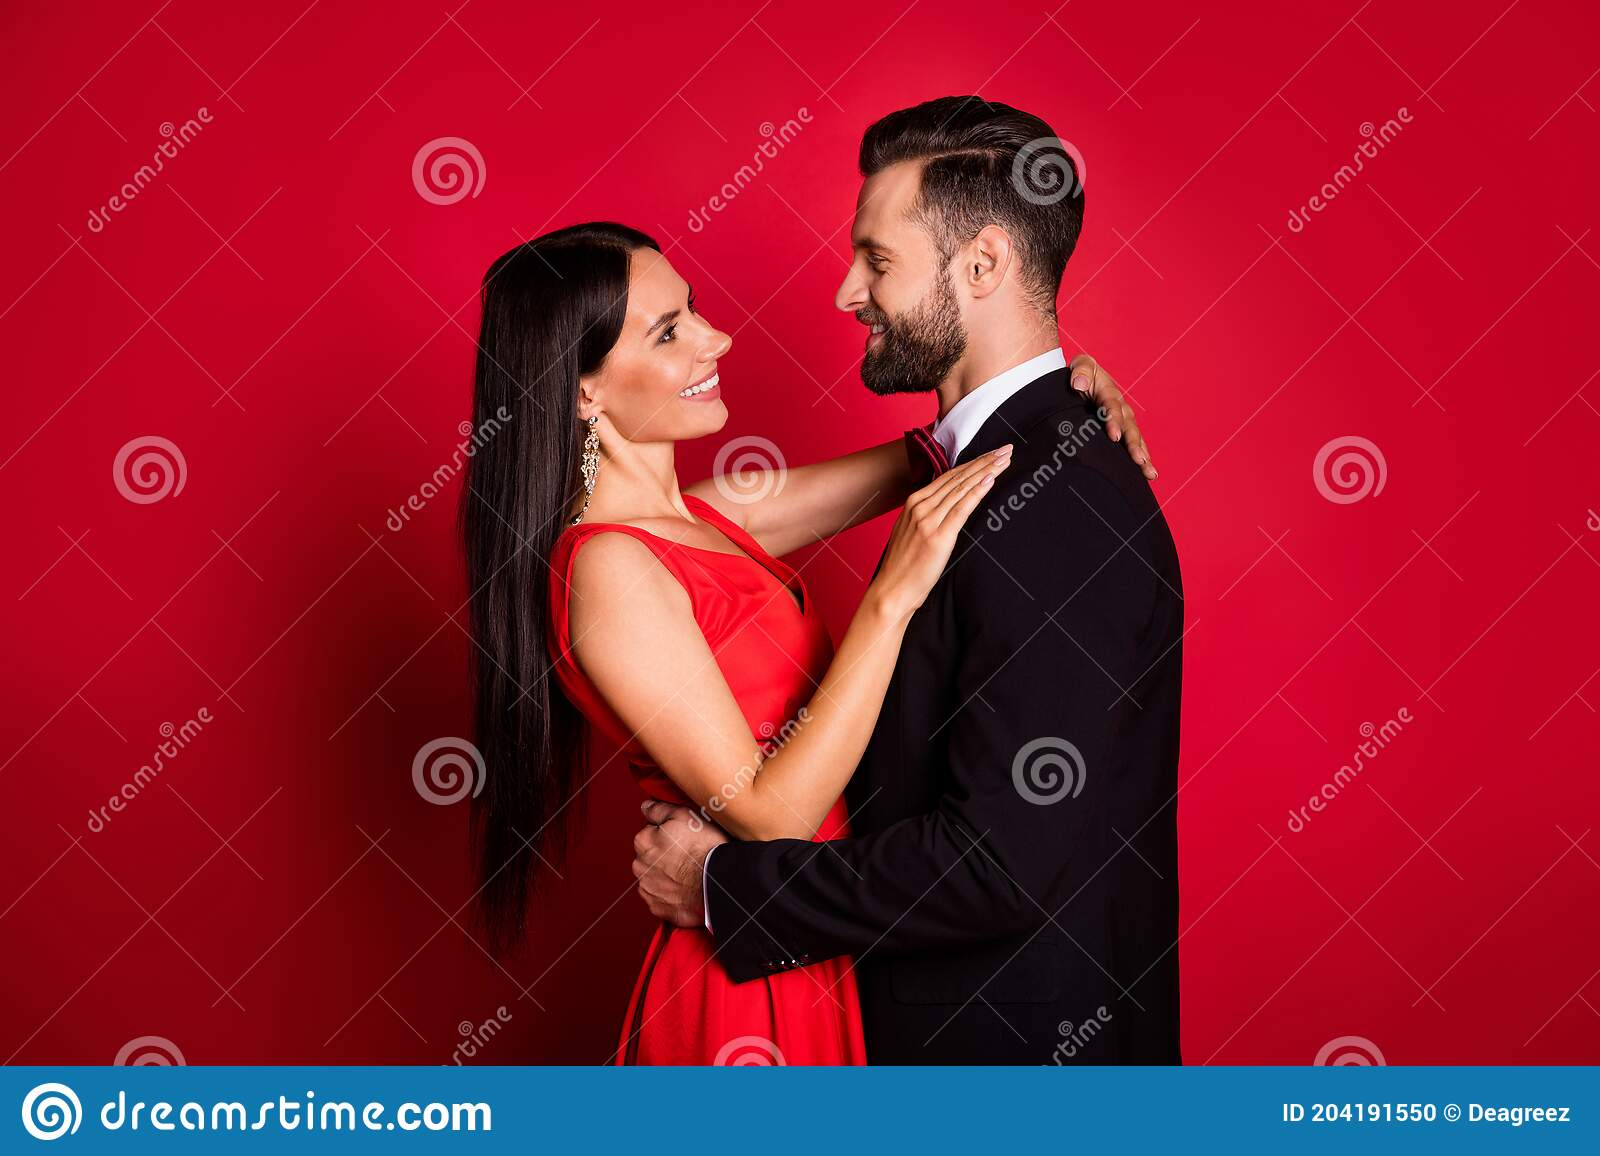 Profile Photo Of Optimistic Cute Couple Dance Wear Suit Dress Isolated On Red Color Background Stock Photo Image Of Love Brunet 204191550